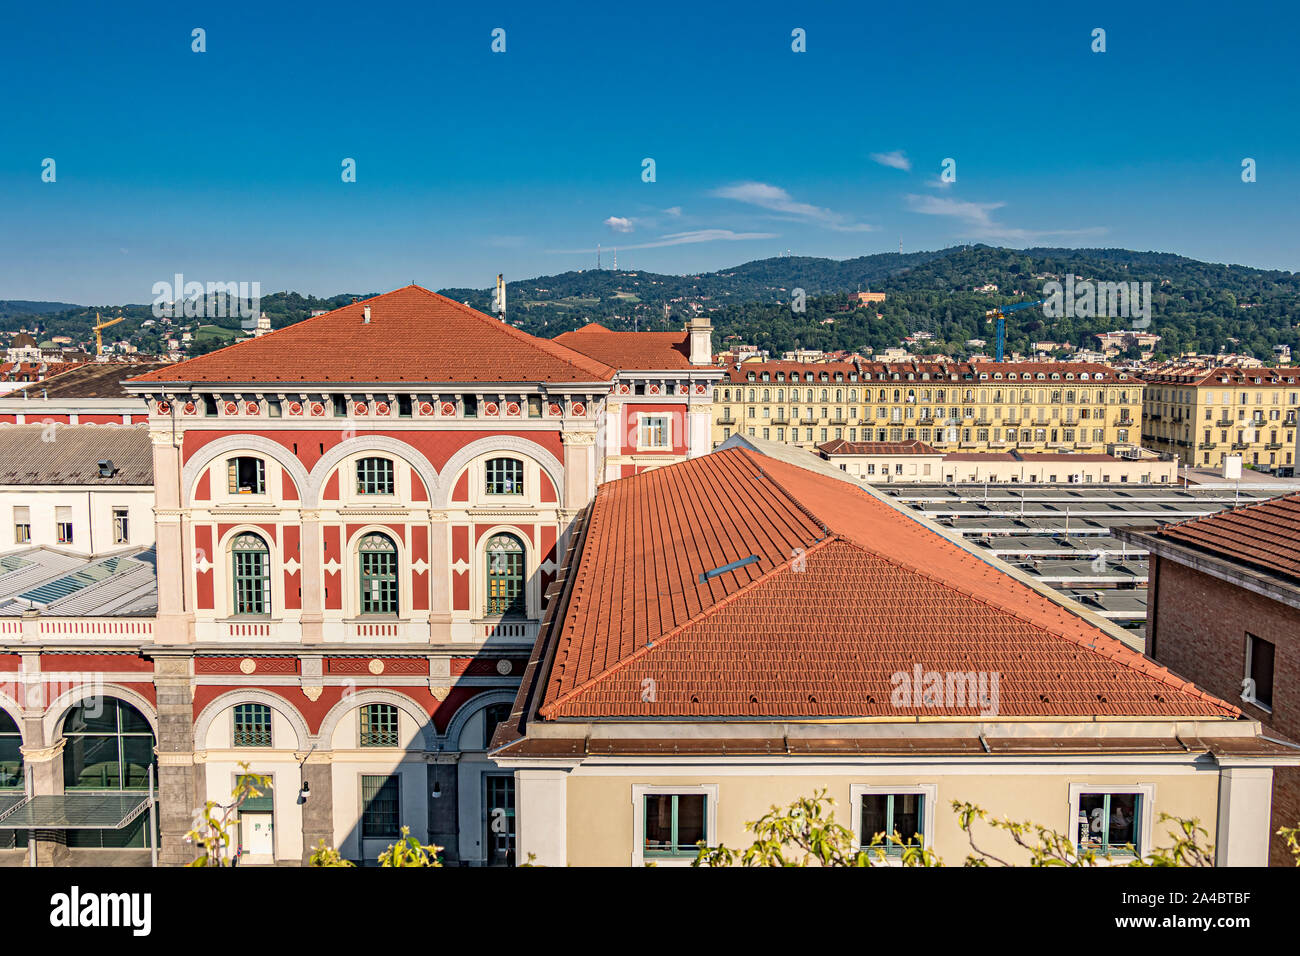 The beautiful exterior of Torino Porta Nuova railway station, the main railway station of Turin and the third busiest station in Italy Stock Photo